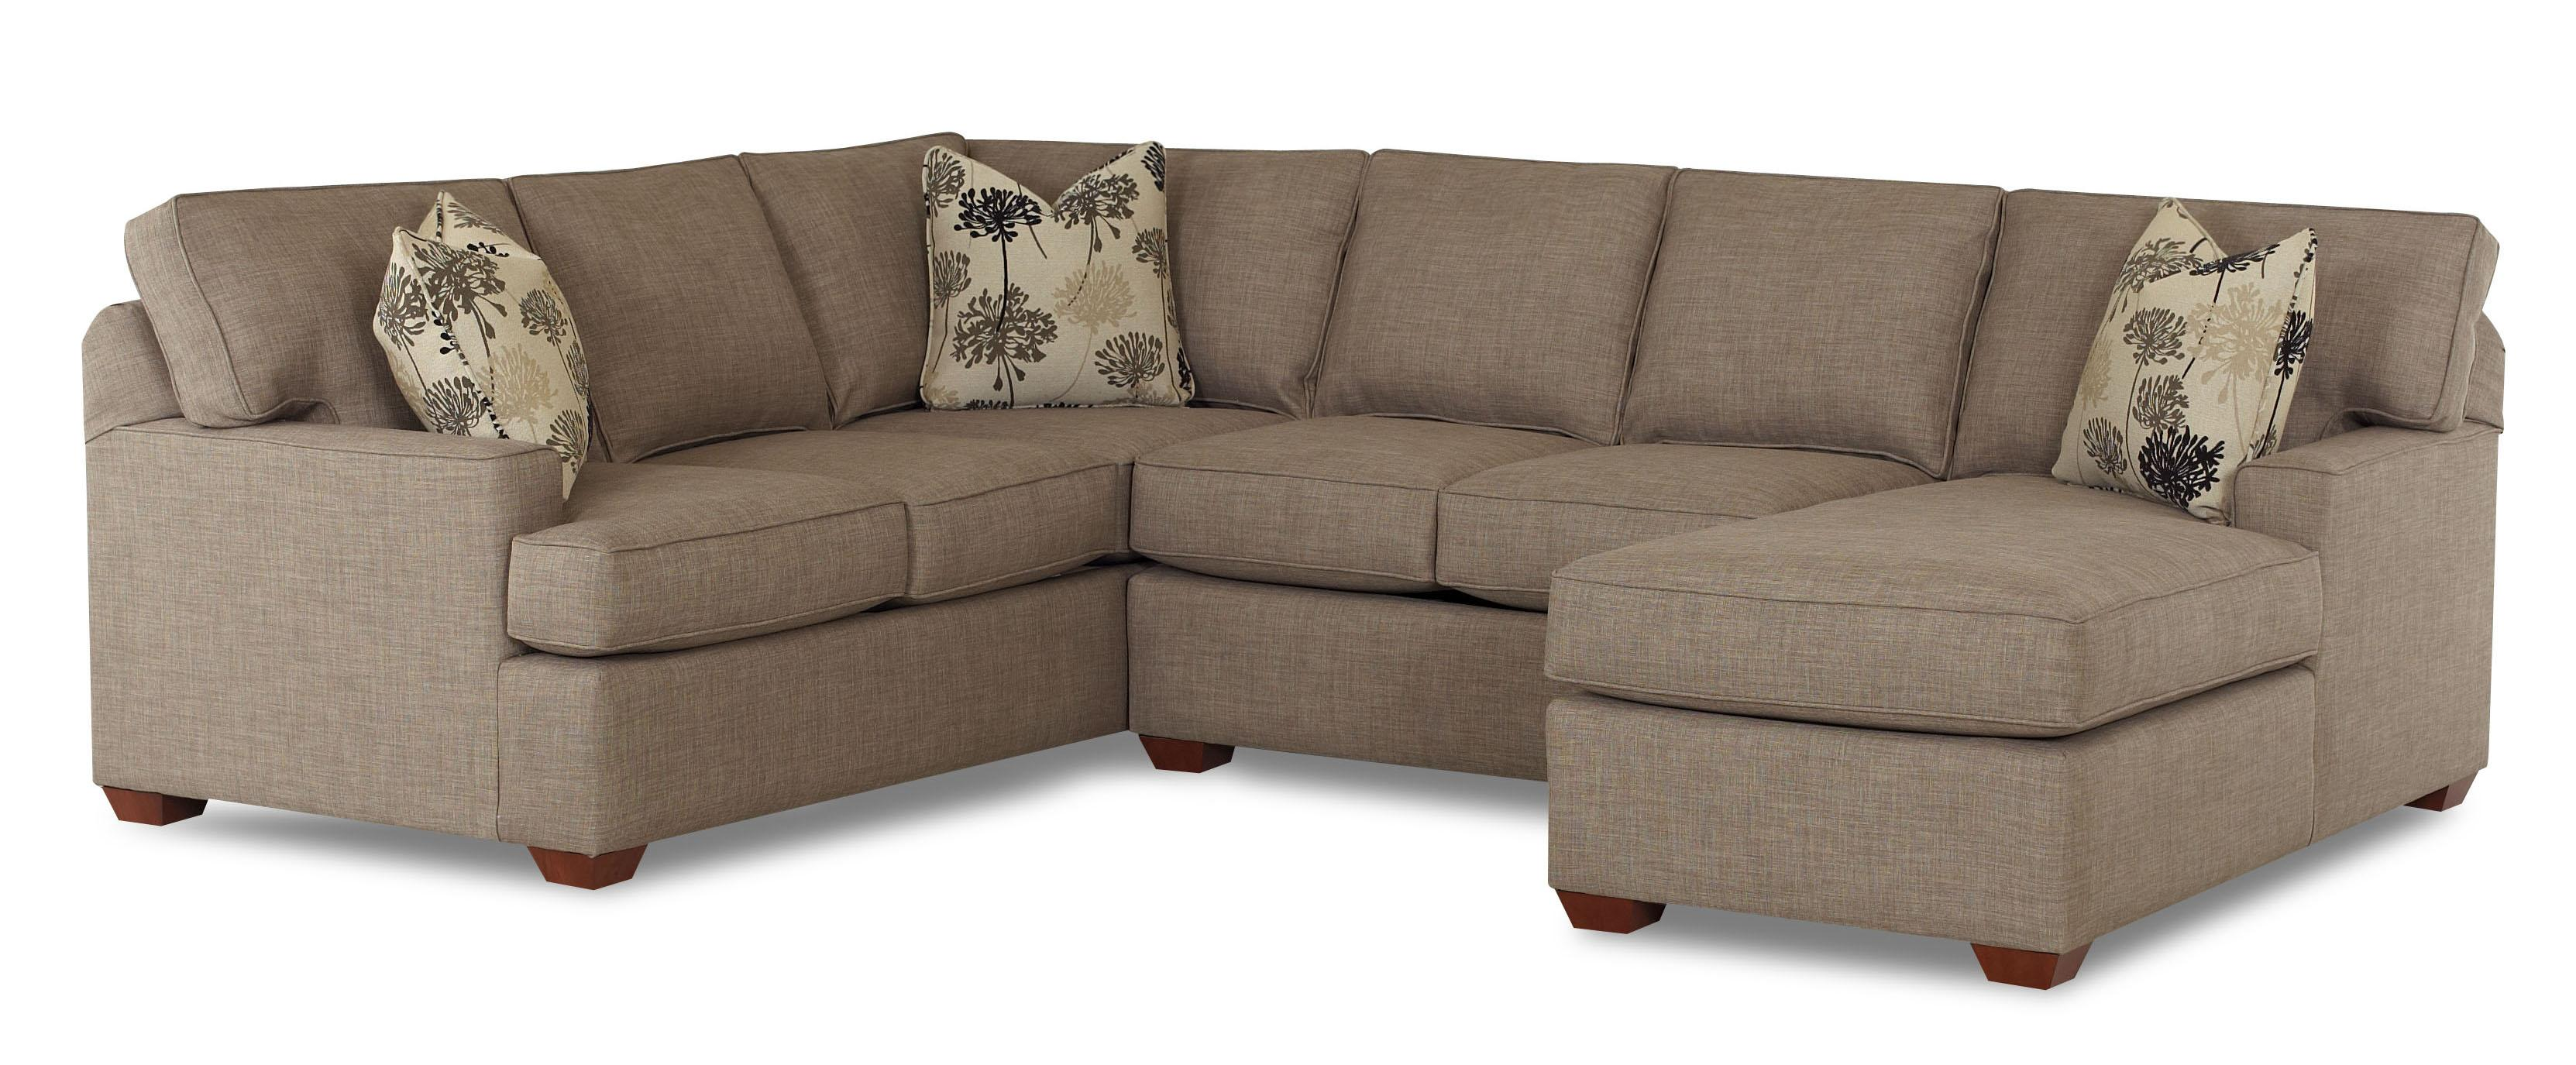 Klaussner Pantego 3 Piece Sectional Sofa With Raf Chaise